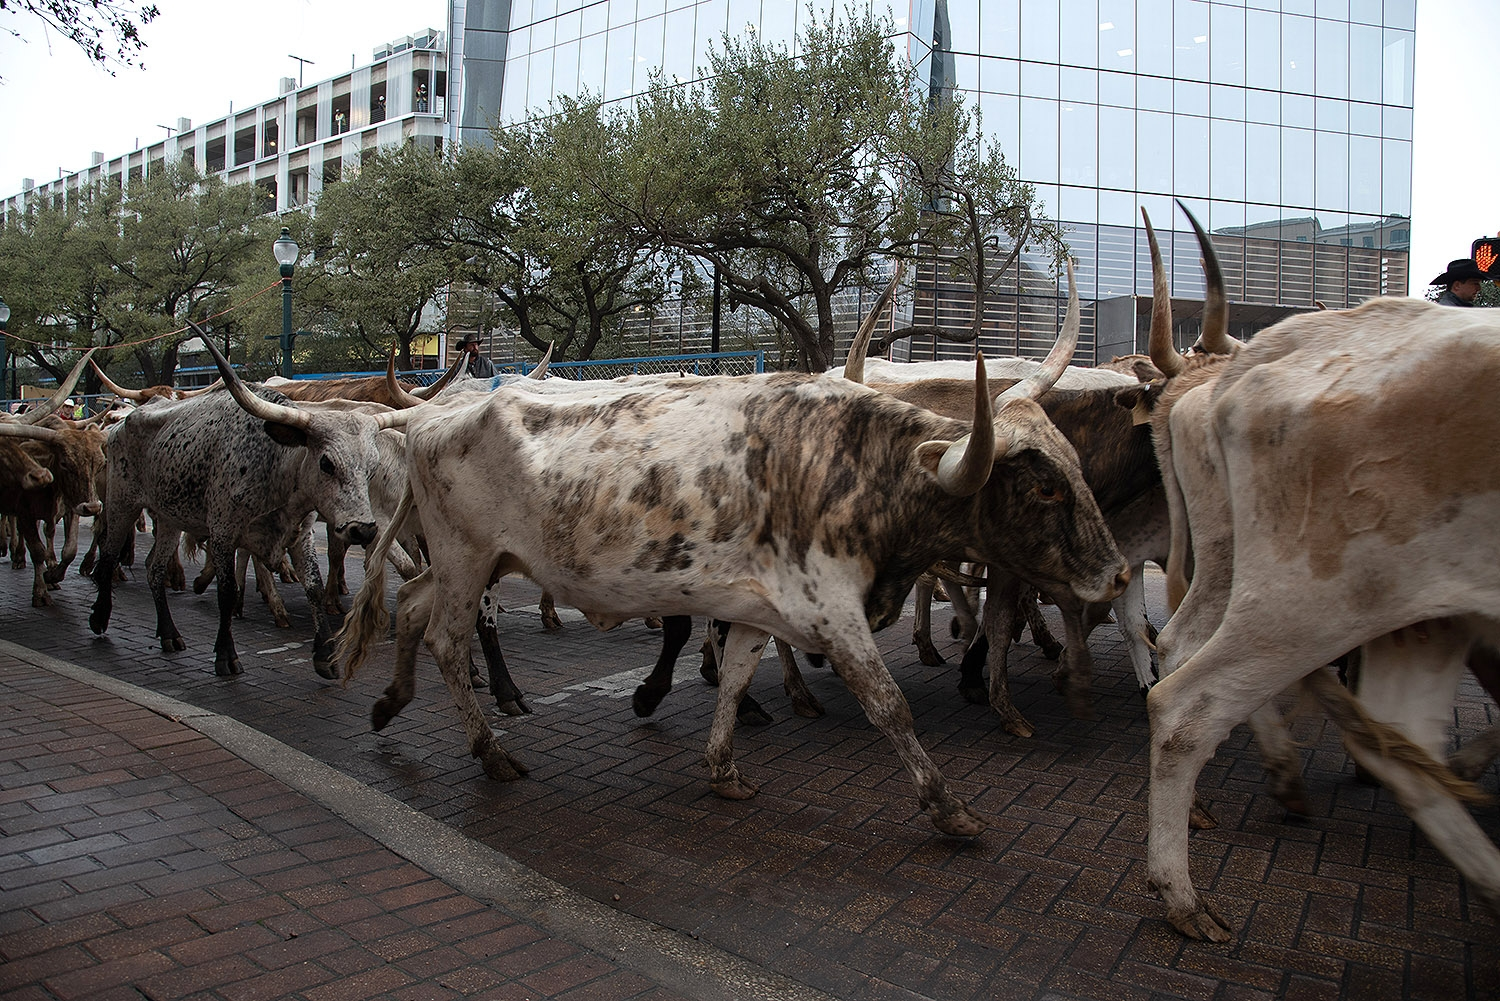 Sixty head of cattle walk in front of Frost tower on Houston St. during the Western Heritage Parade and Cattle Drive Feb. 2. <em><b>Photo by V. Finster | Heron</b></em>